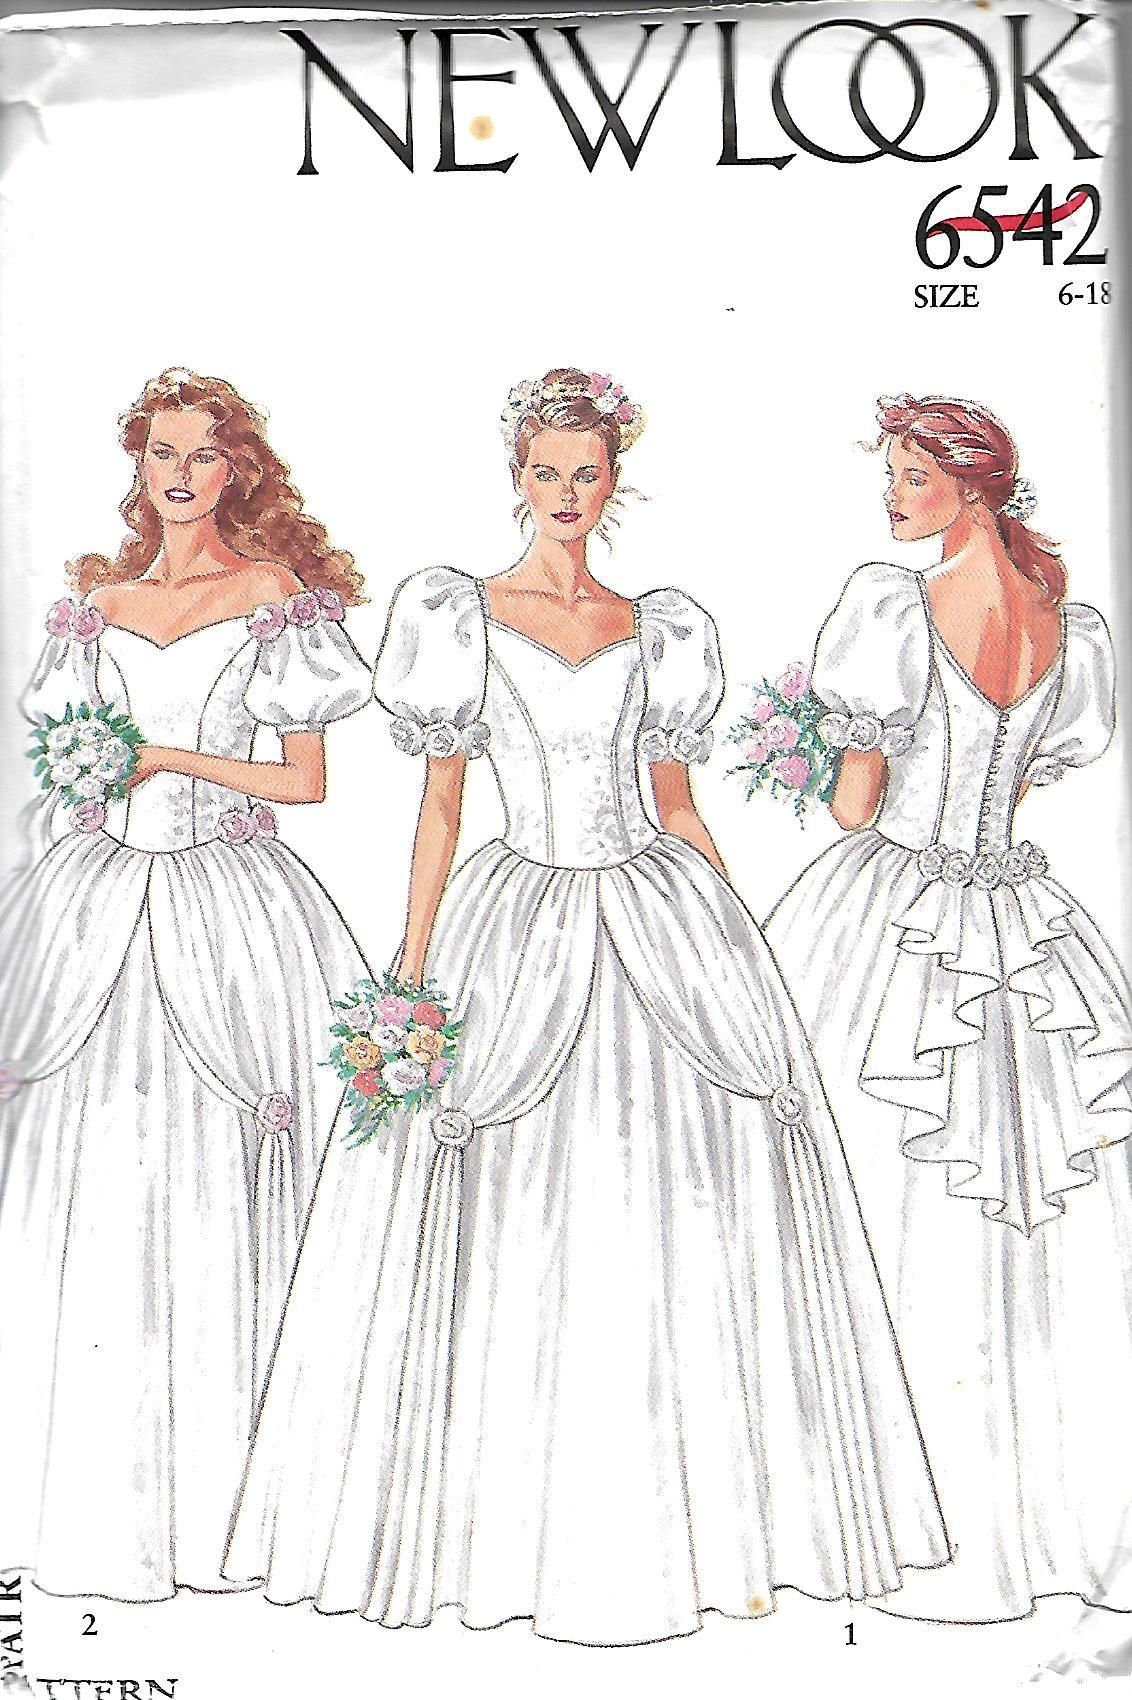 New Look 6542 Misses Bridal Gown Pattern, Wedding Dress, Sweetheart ...